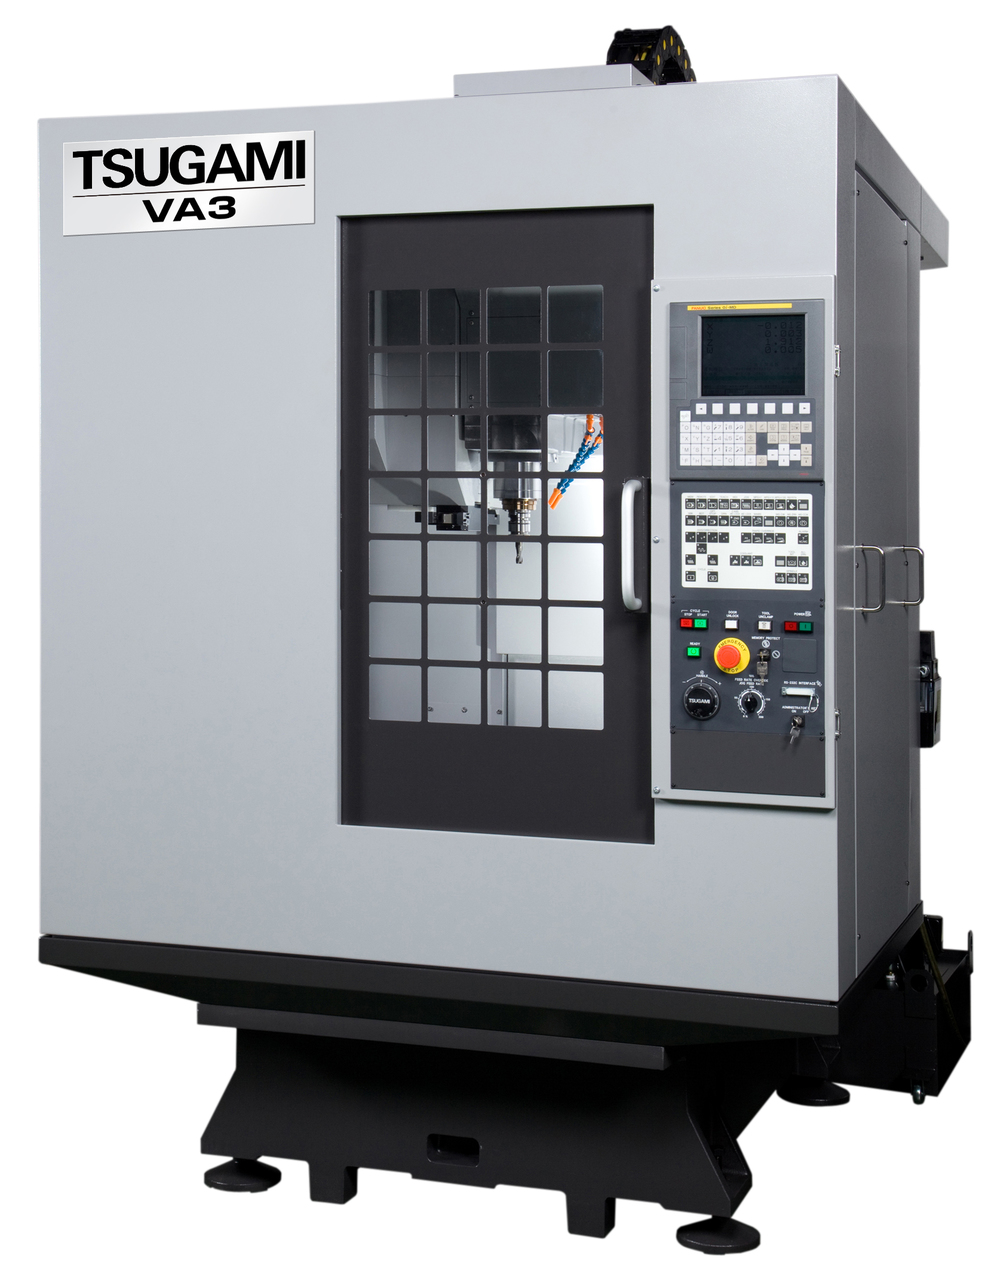 tsugami va3: cnc high speed machining center